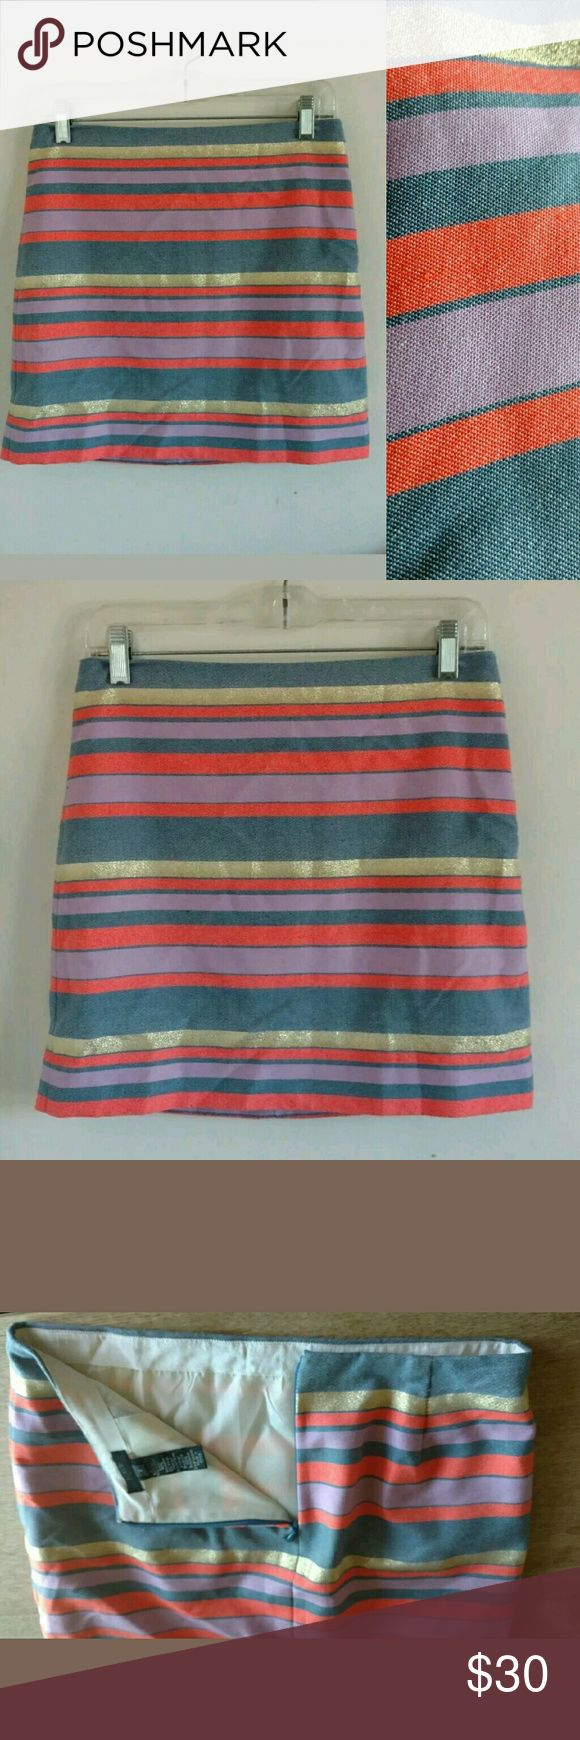 """J. Crew Factory Metallic Striped mini skirt Sz 2 J Crew multi color Striped Mini Skirt. Features summery multi-color stripes. The color combination is Coral, lavender, Denim Blue, and a Gold metallic thread. Sz 2 (actual measurements are as follows)? Waist 28""""? Length 15.5""""? Hips 35""""? Condition: excellent! No stains. J.Crew Factory Skirts Mini"""